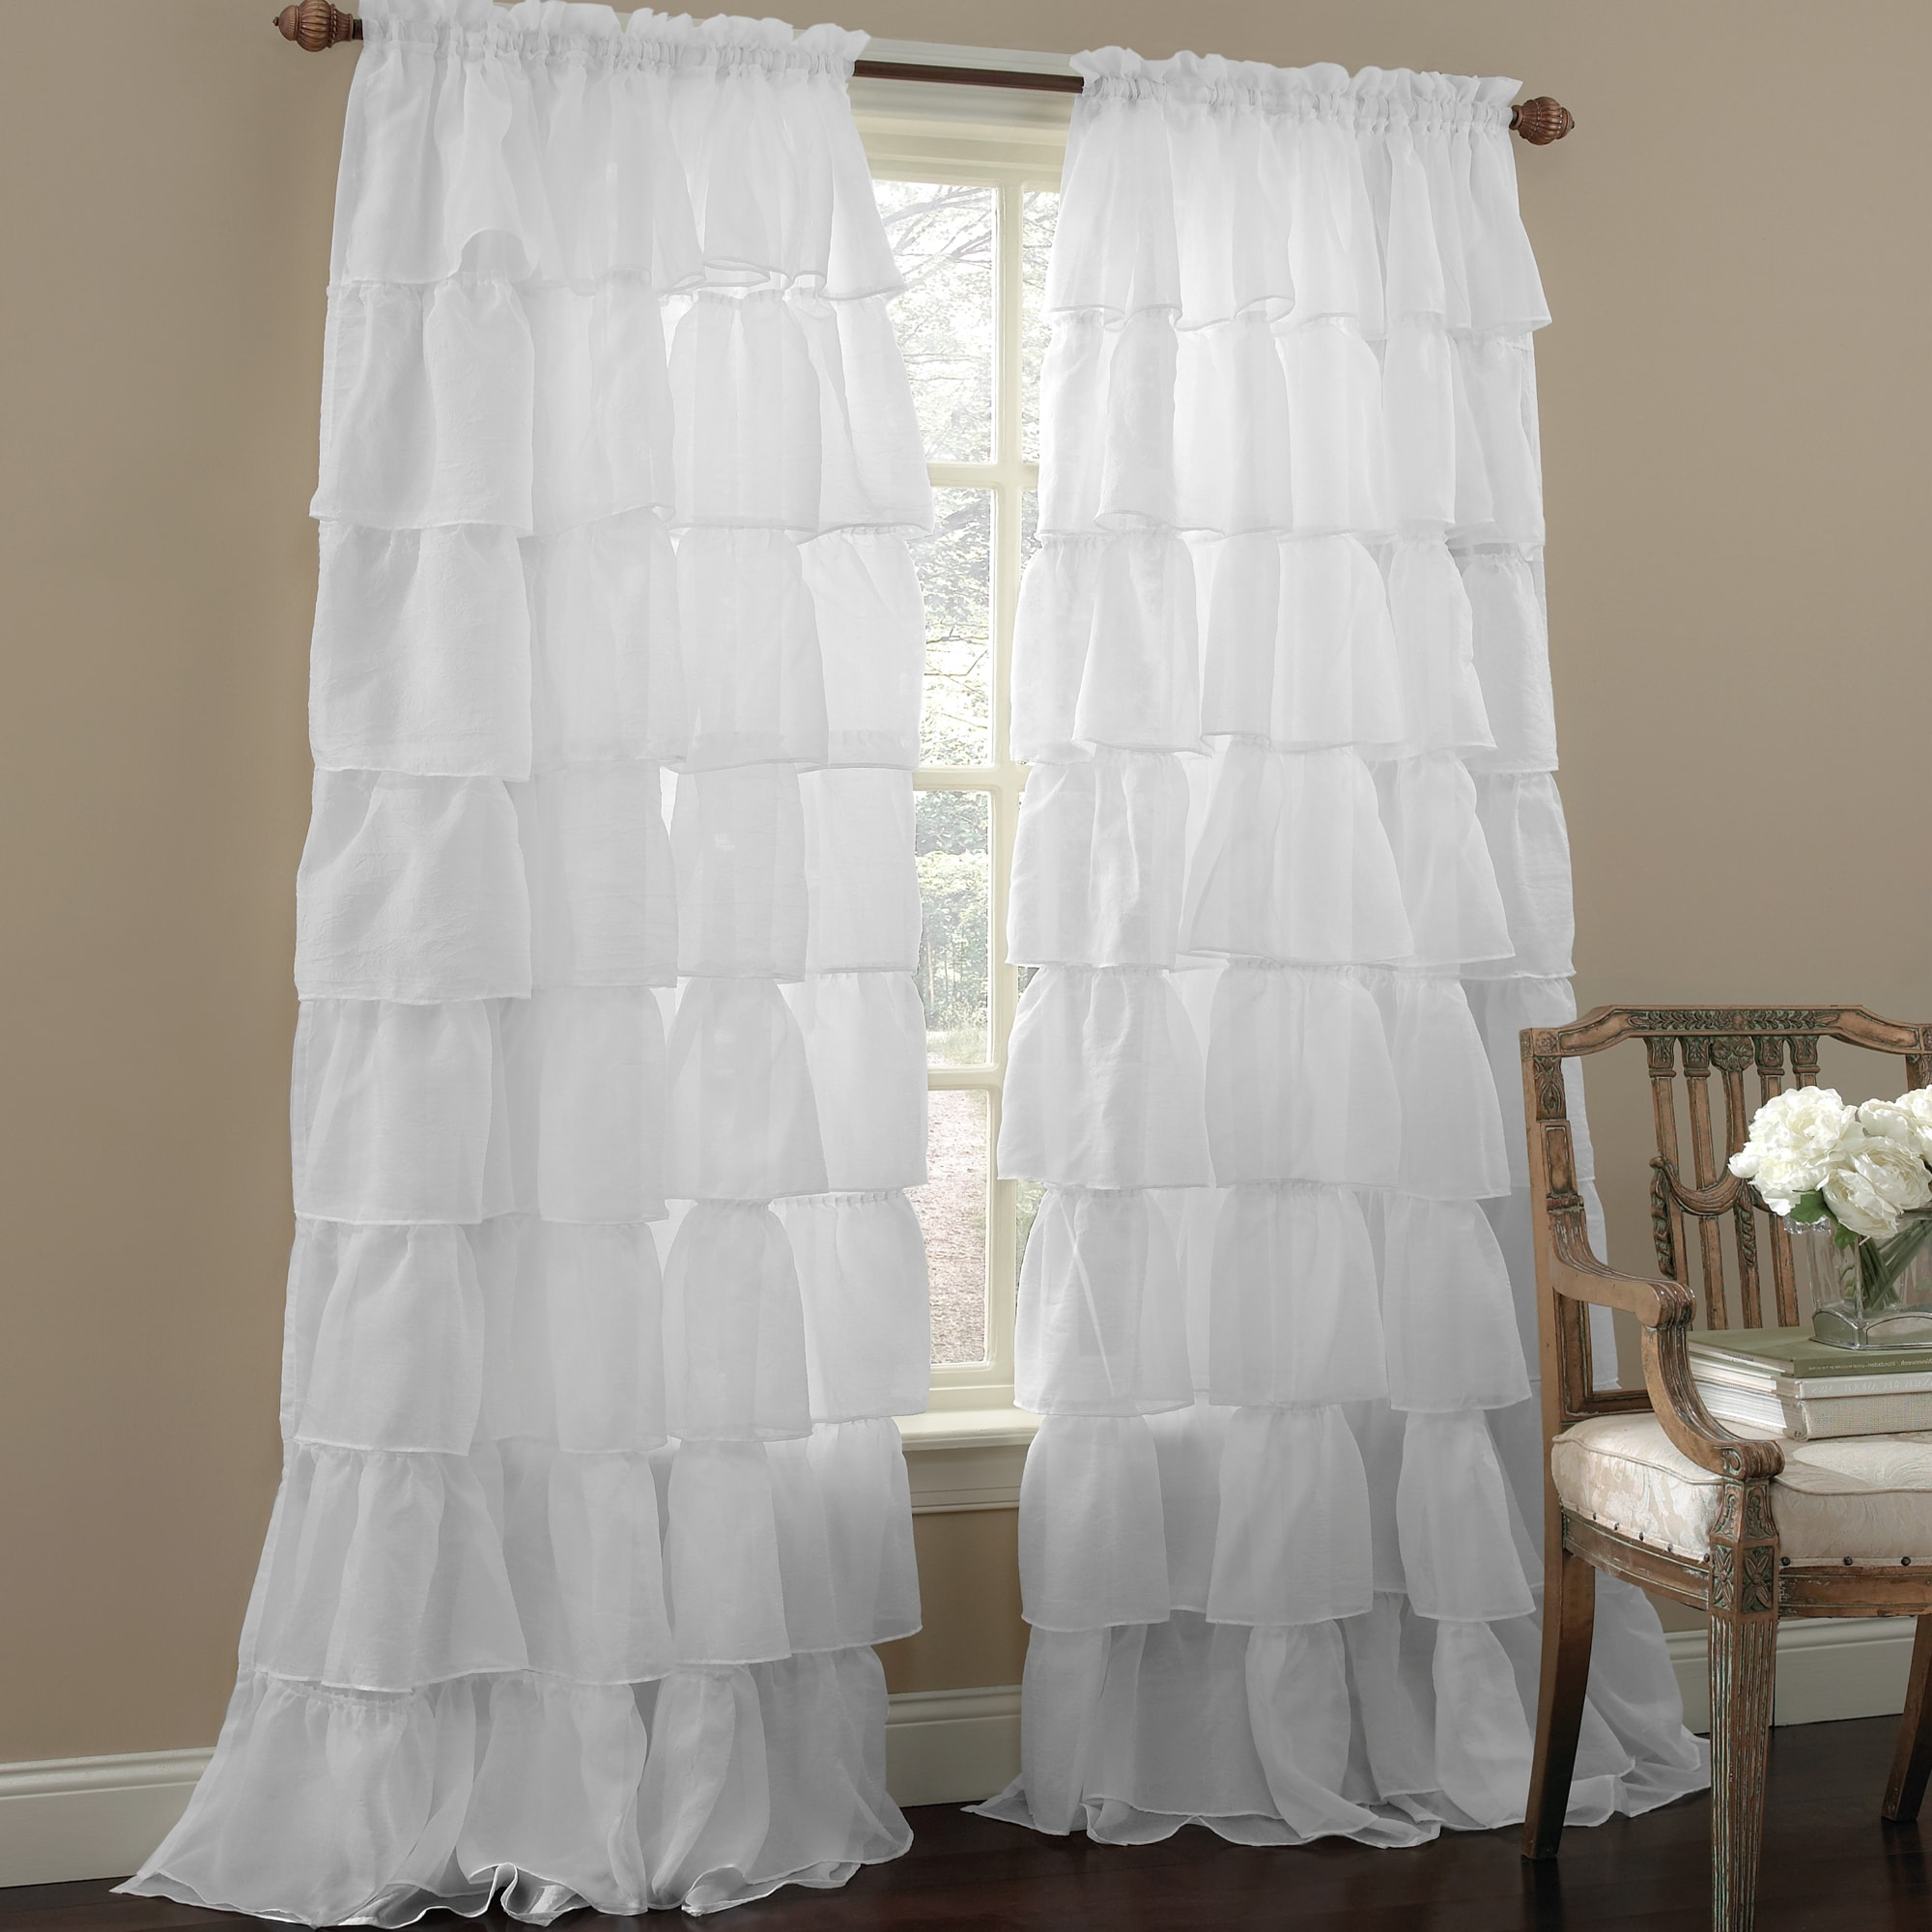 Sheer Voile Ruffled Tier Window Curtain Panels With Regard To Latest Crushed Voile Bouffant Assorted Colors 60 Inch X 84 Inch (View 13 of 20)